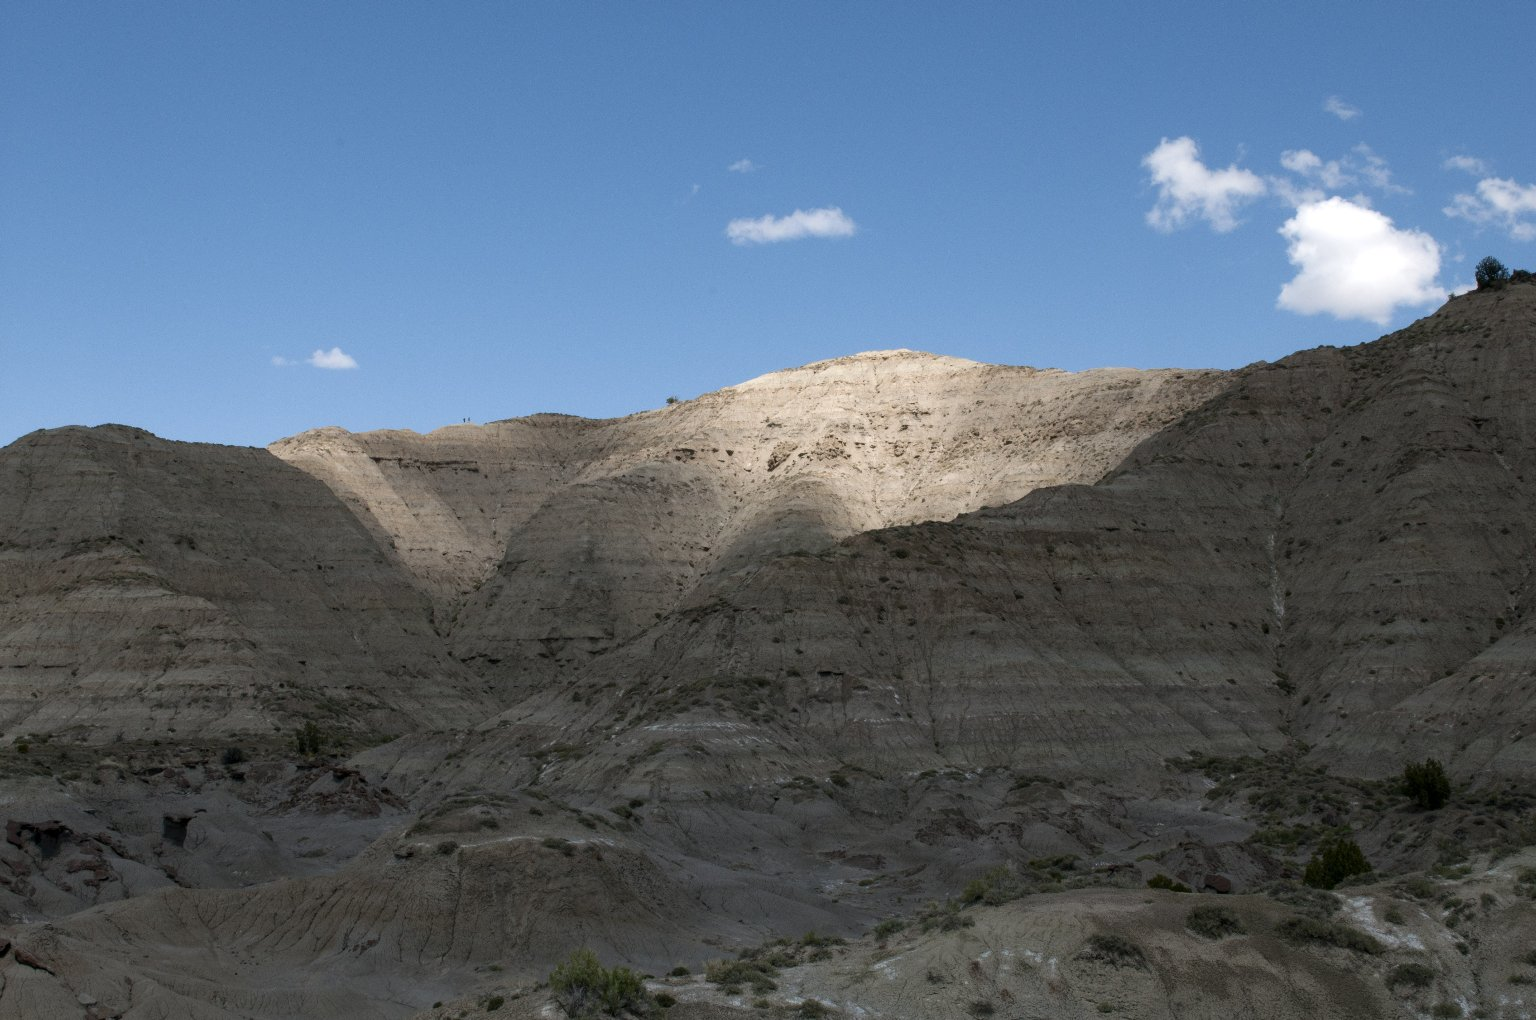 Clouds cause afternoon shadows on the Kaiparowits Plateau.